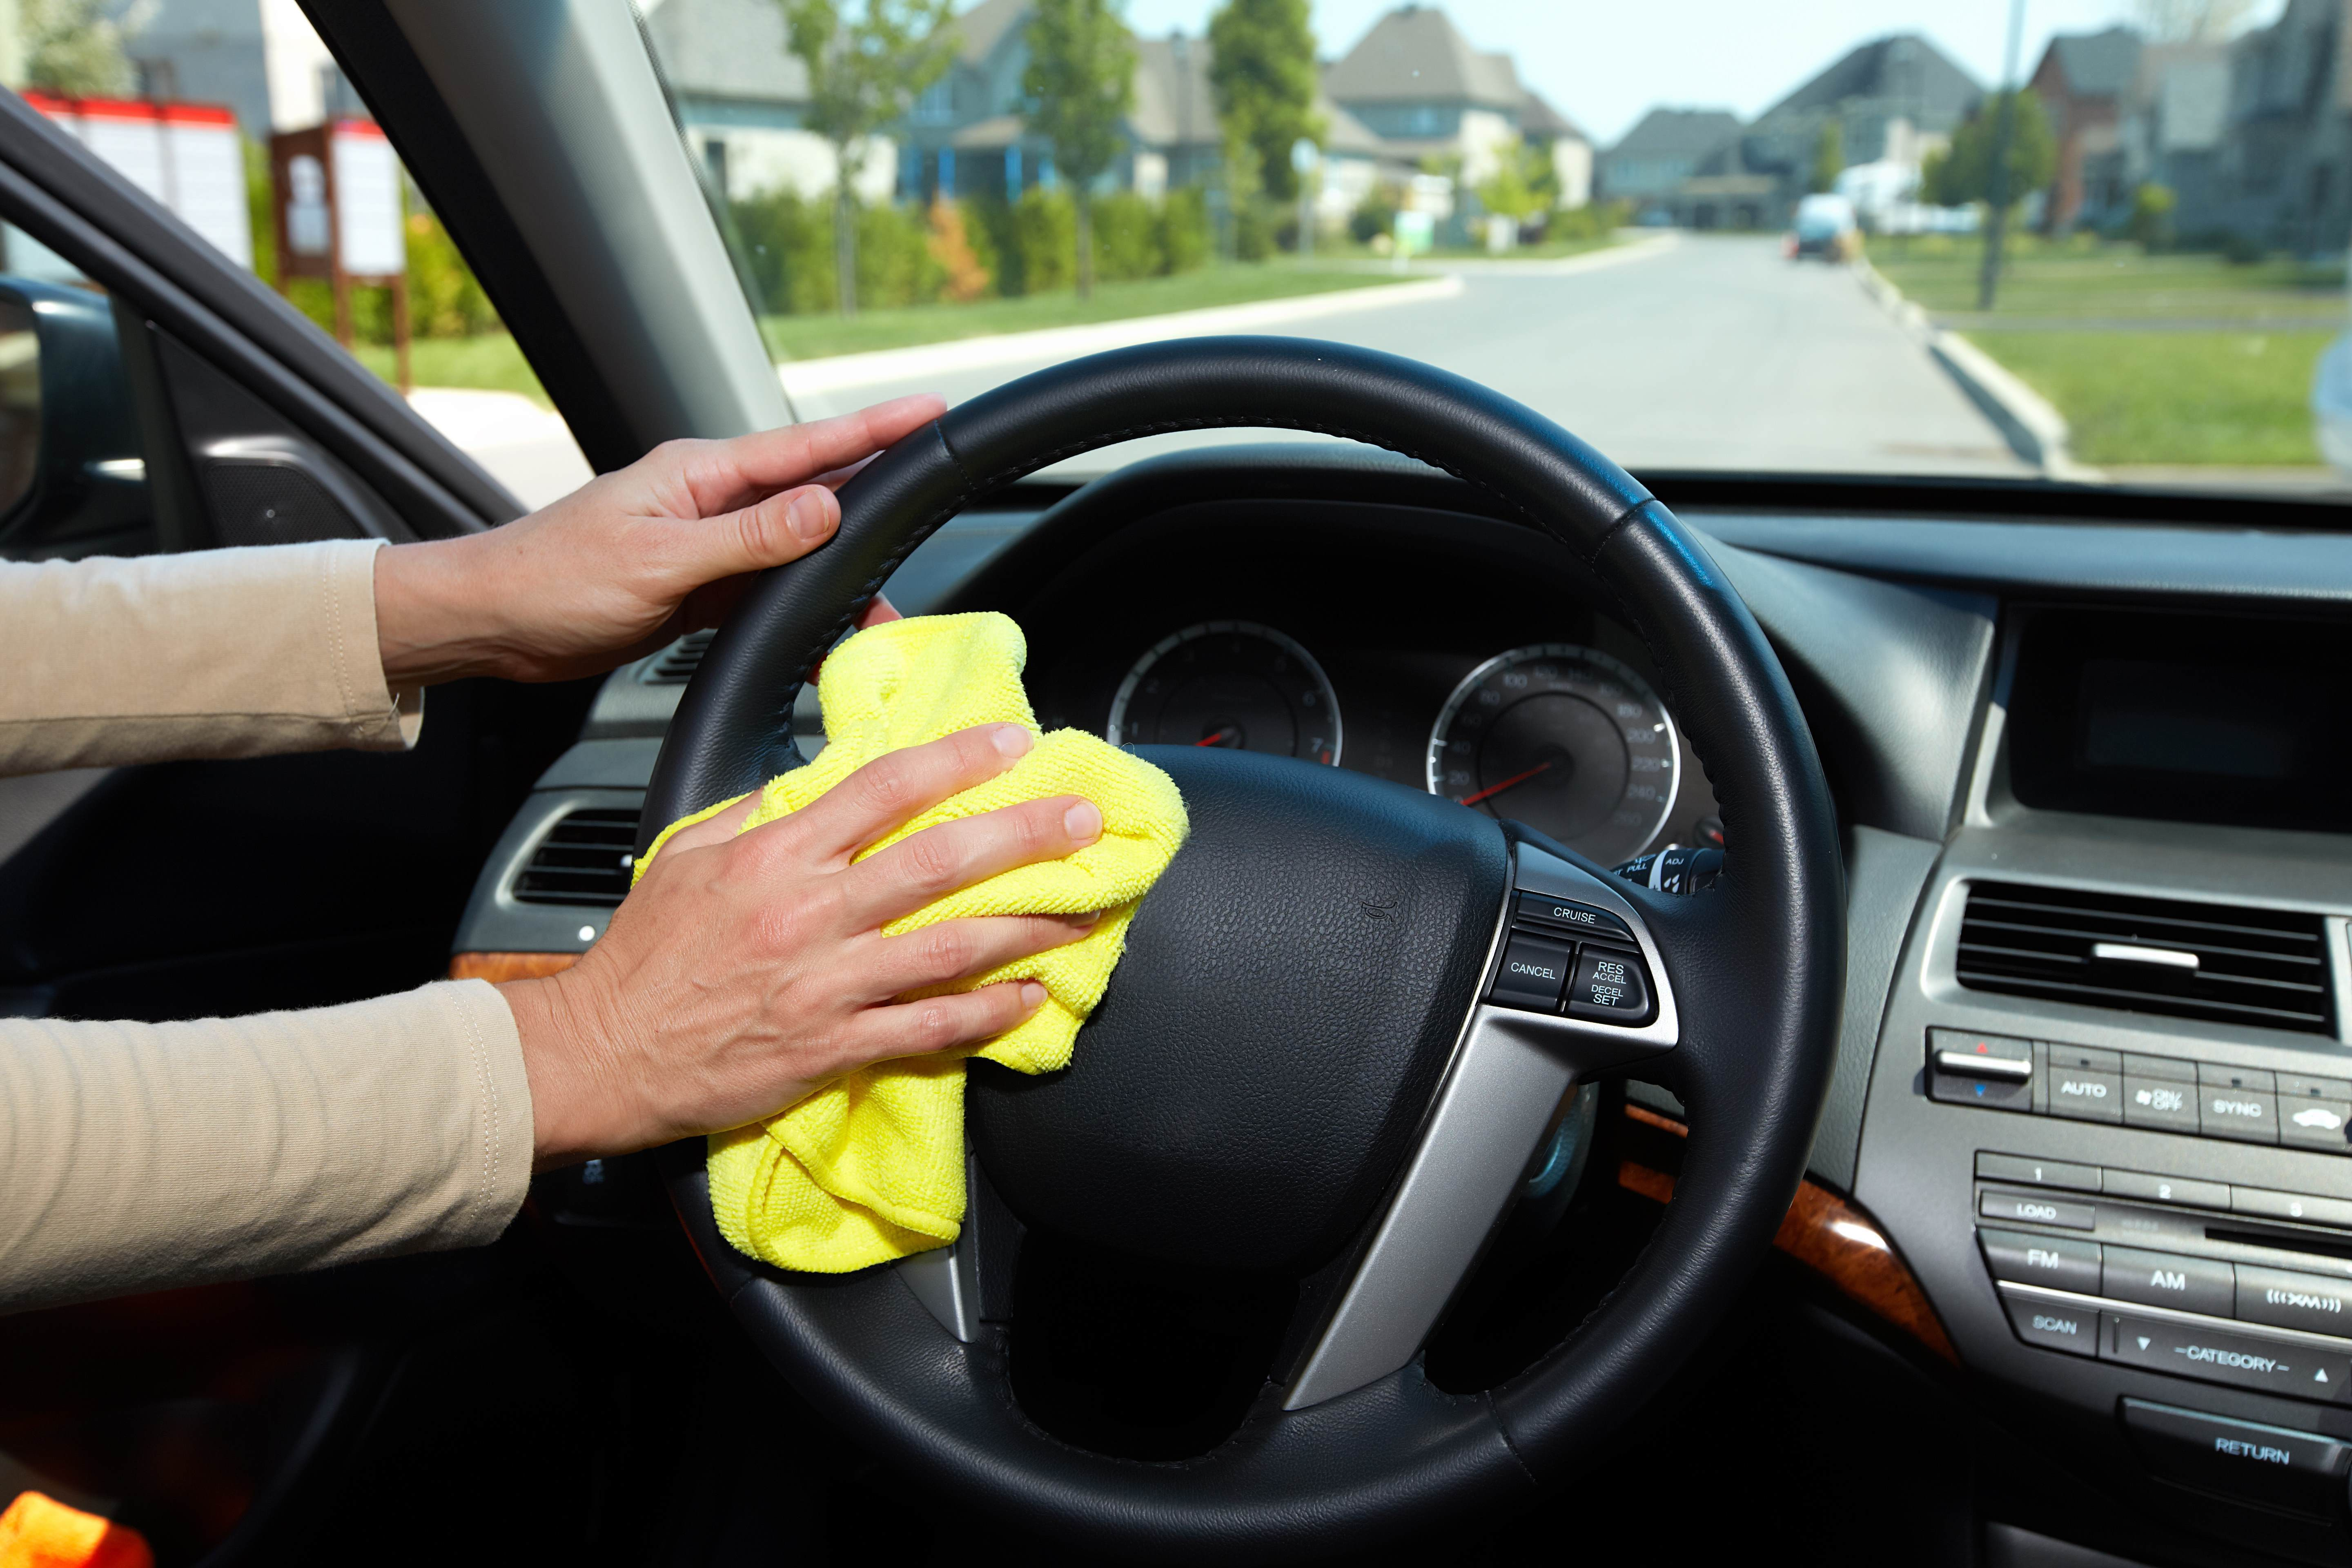 Interior and exterior vehicle cleaning and detailing